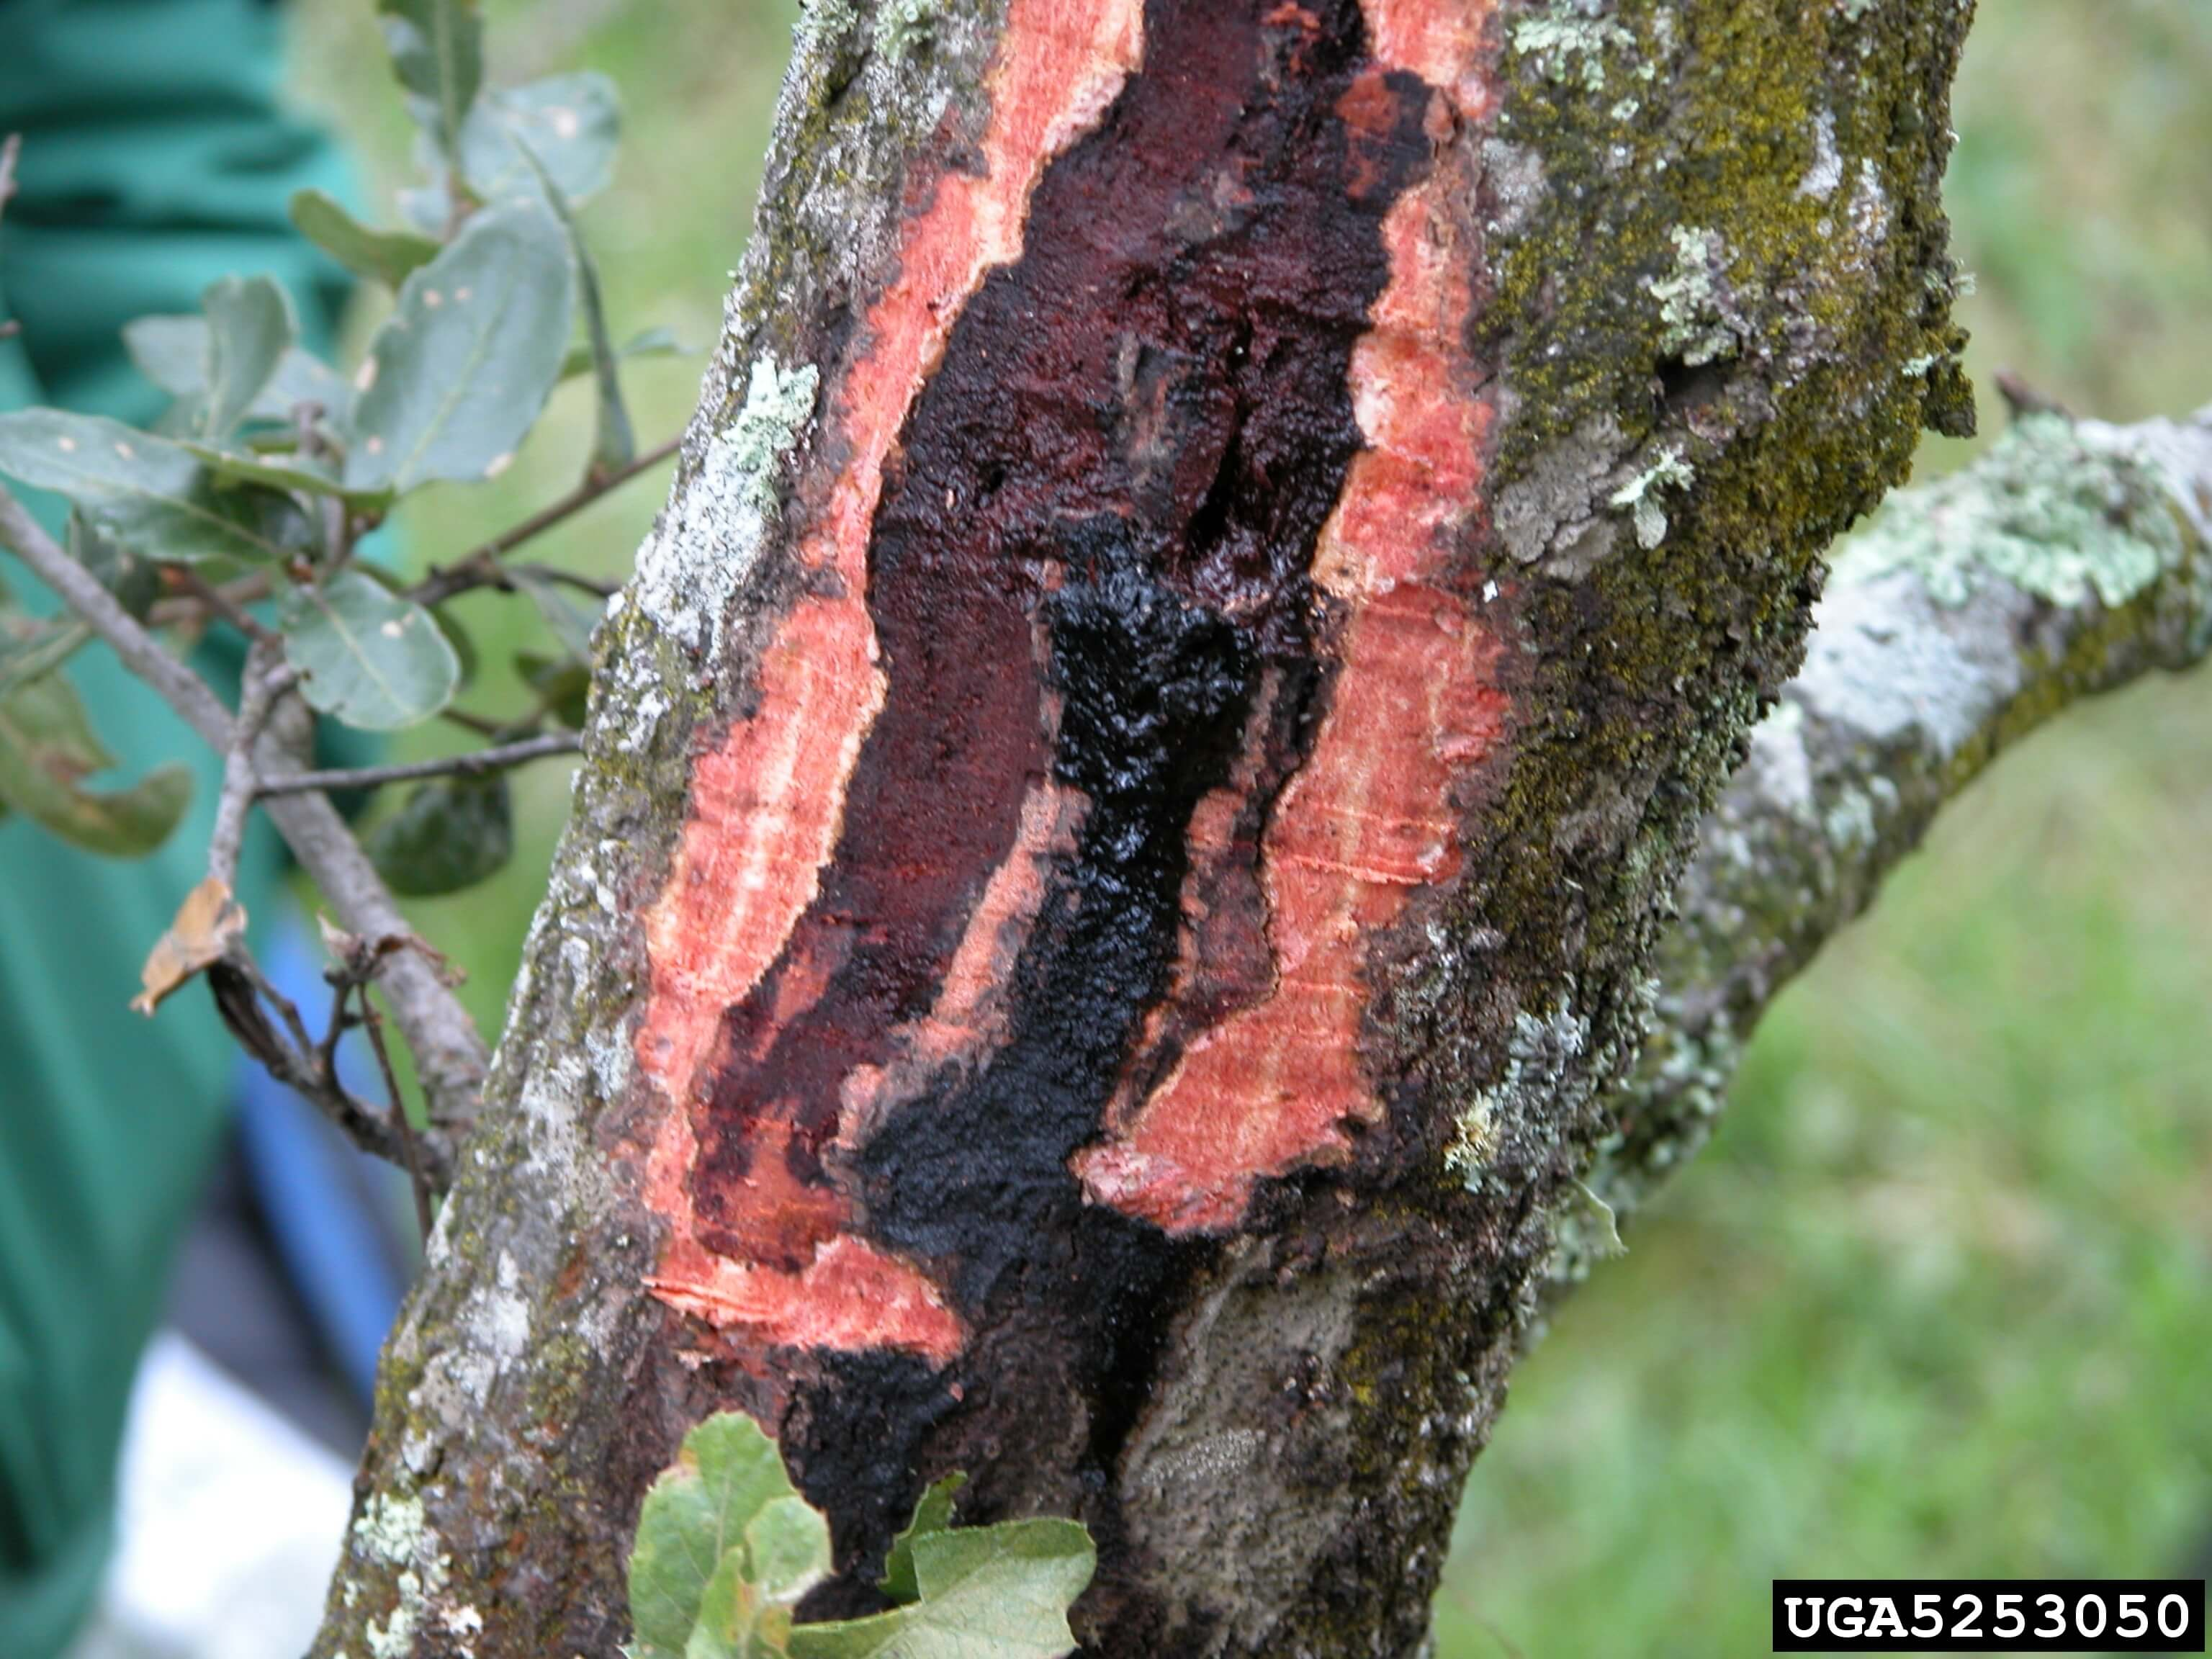 Phytophthora Root Rot Silent Killer In Harmony